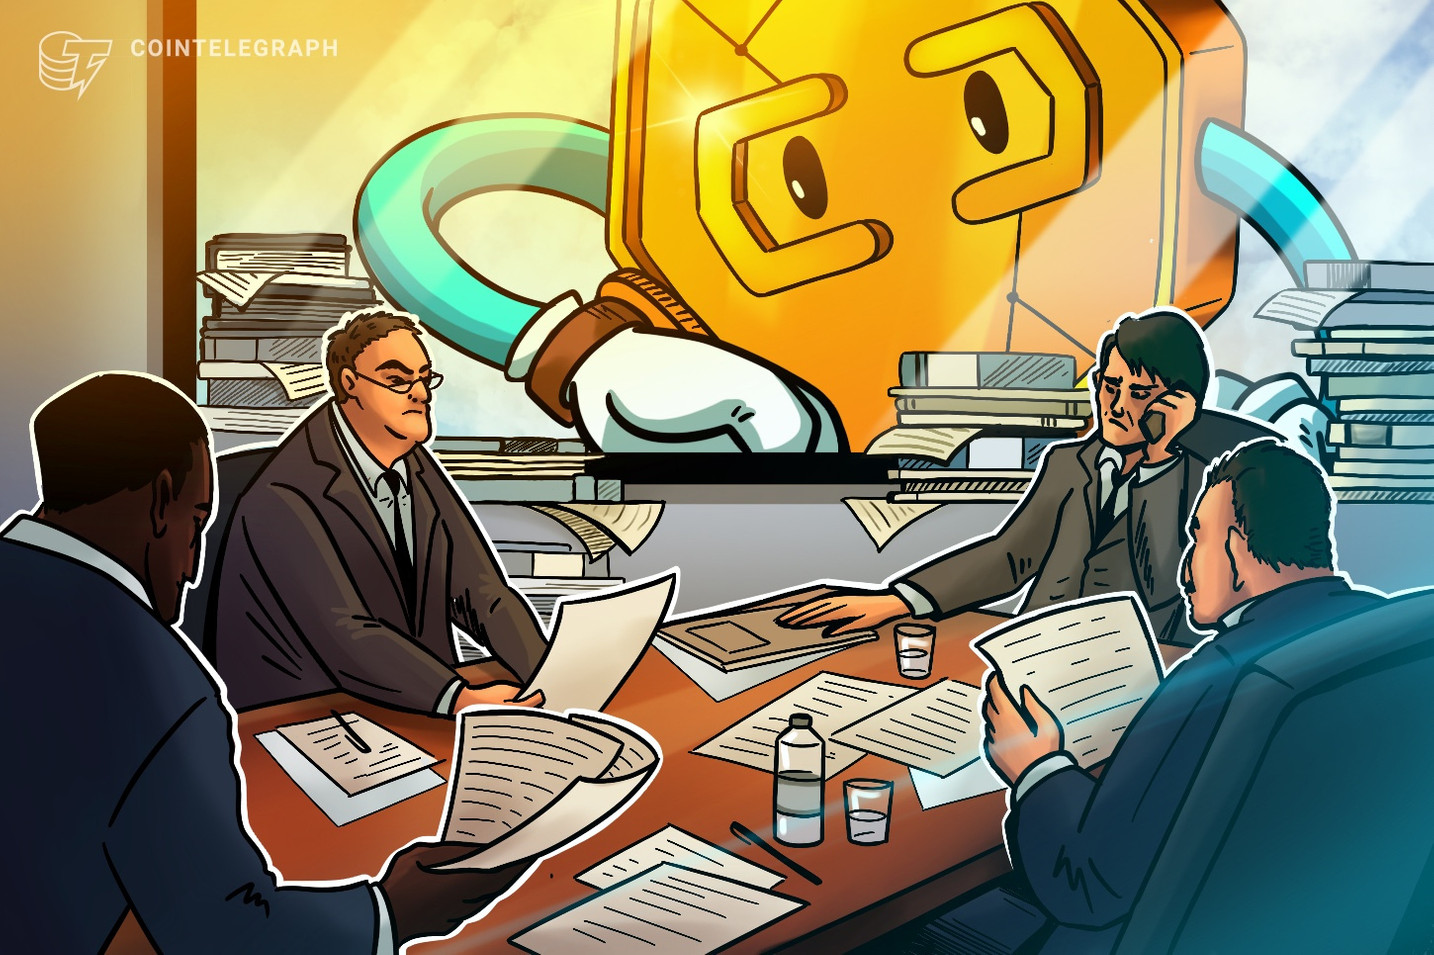 Treasury attempts to squeeze further crypto-related data sharing provisions in budget bill: Roll Call